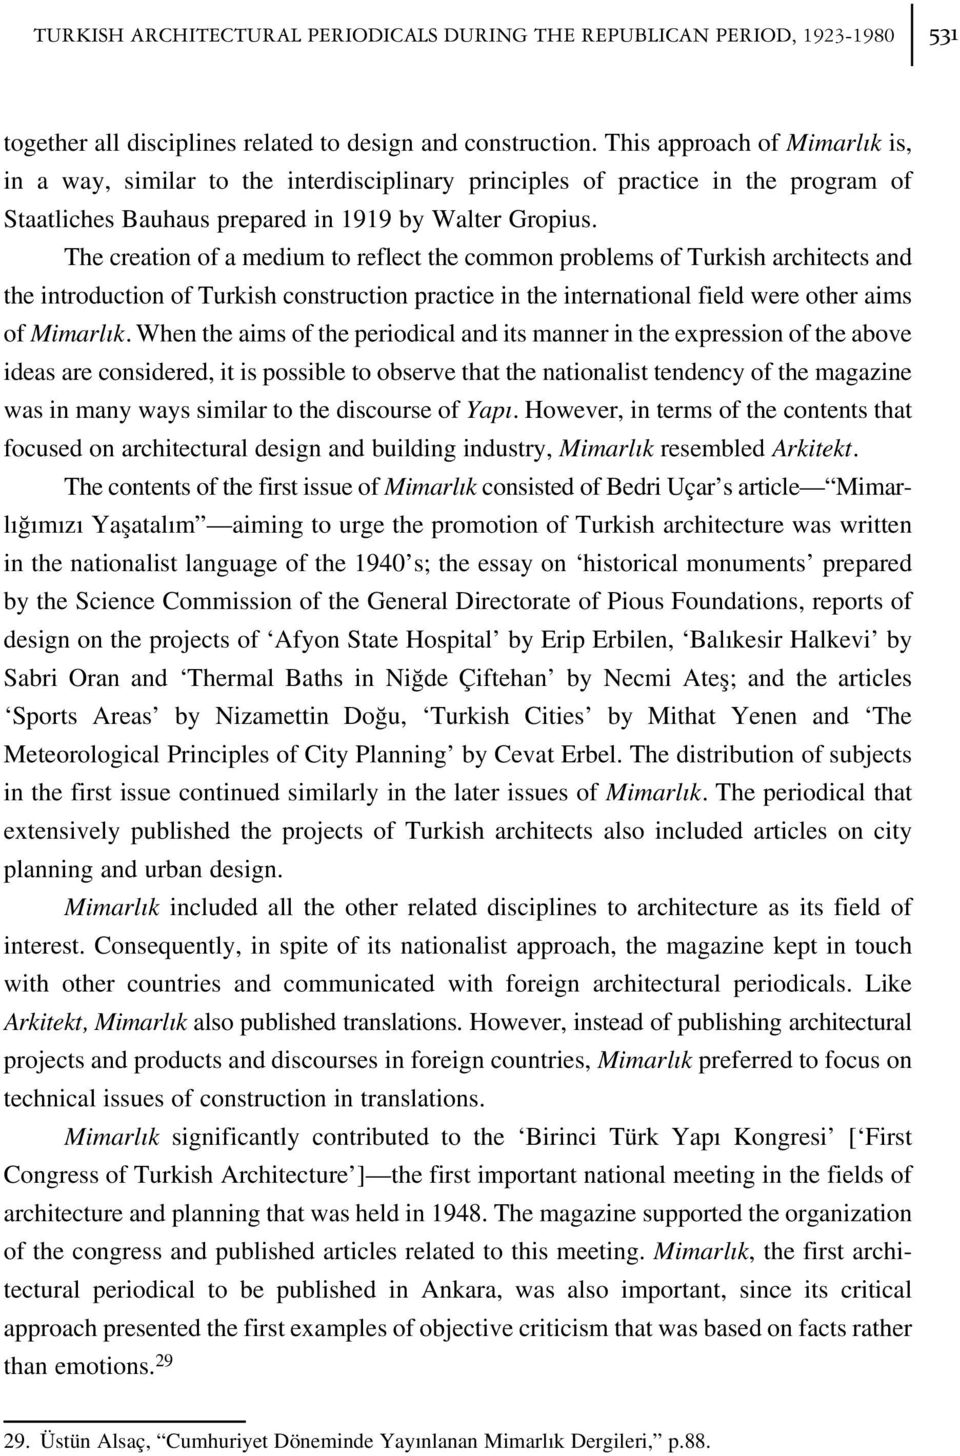 The creation of a medium to reflect the common problems of Turkish architects and the introduction of Turkish construction practice in the international field were other aims of Mimarl k.